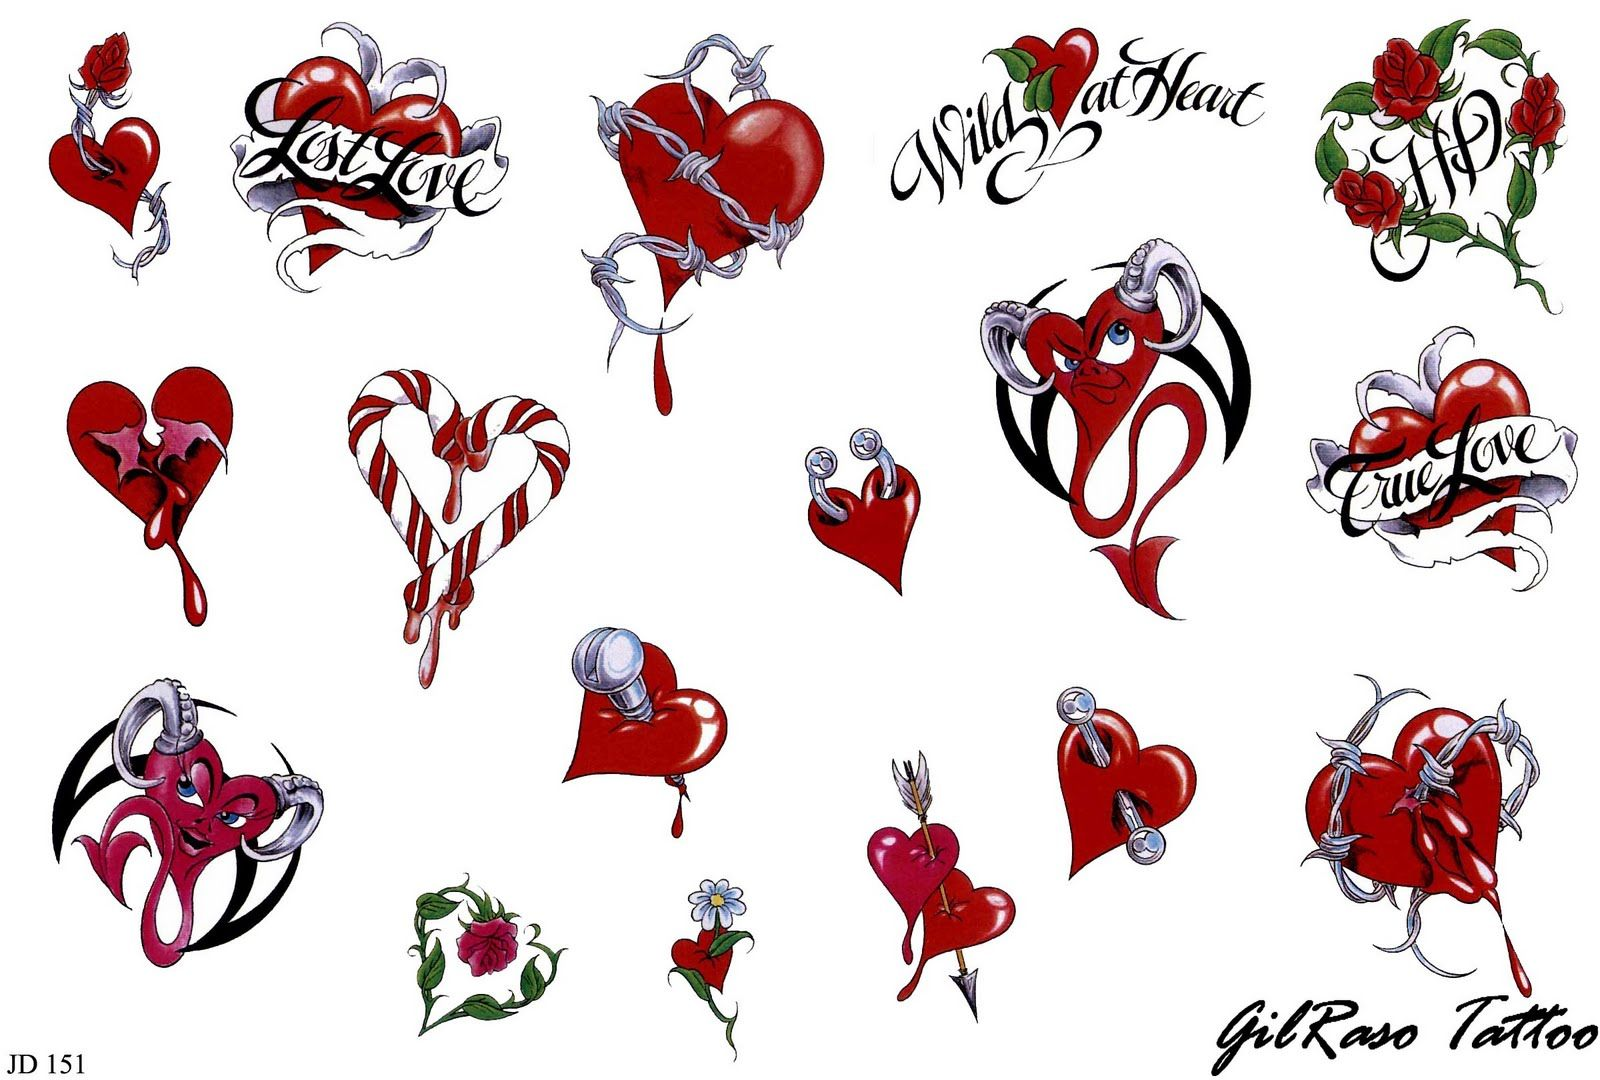 Gil tattoo coraes heart infinity for women rose tattoo i dont must tell you that the heart is the symbol of affection tribal heart tattoos are usually worn by ladies and girls biocorpaavc Images